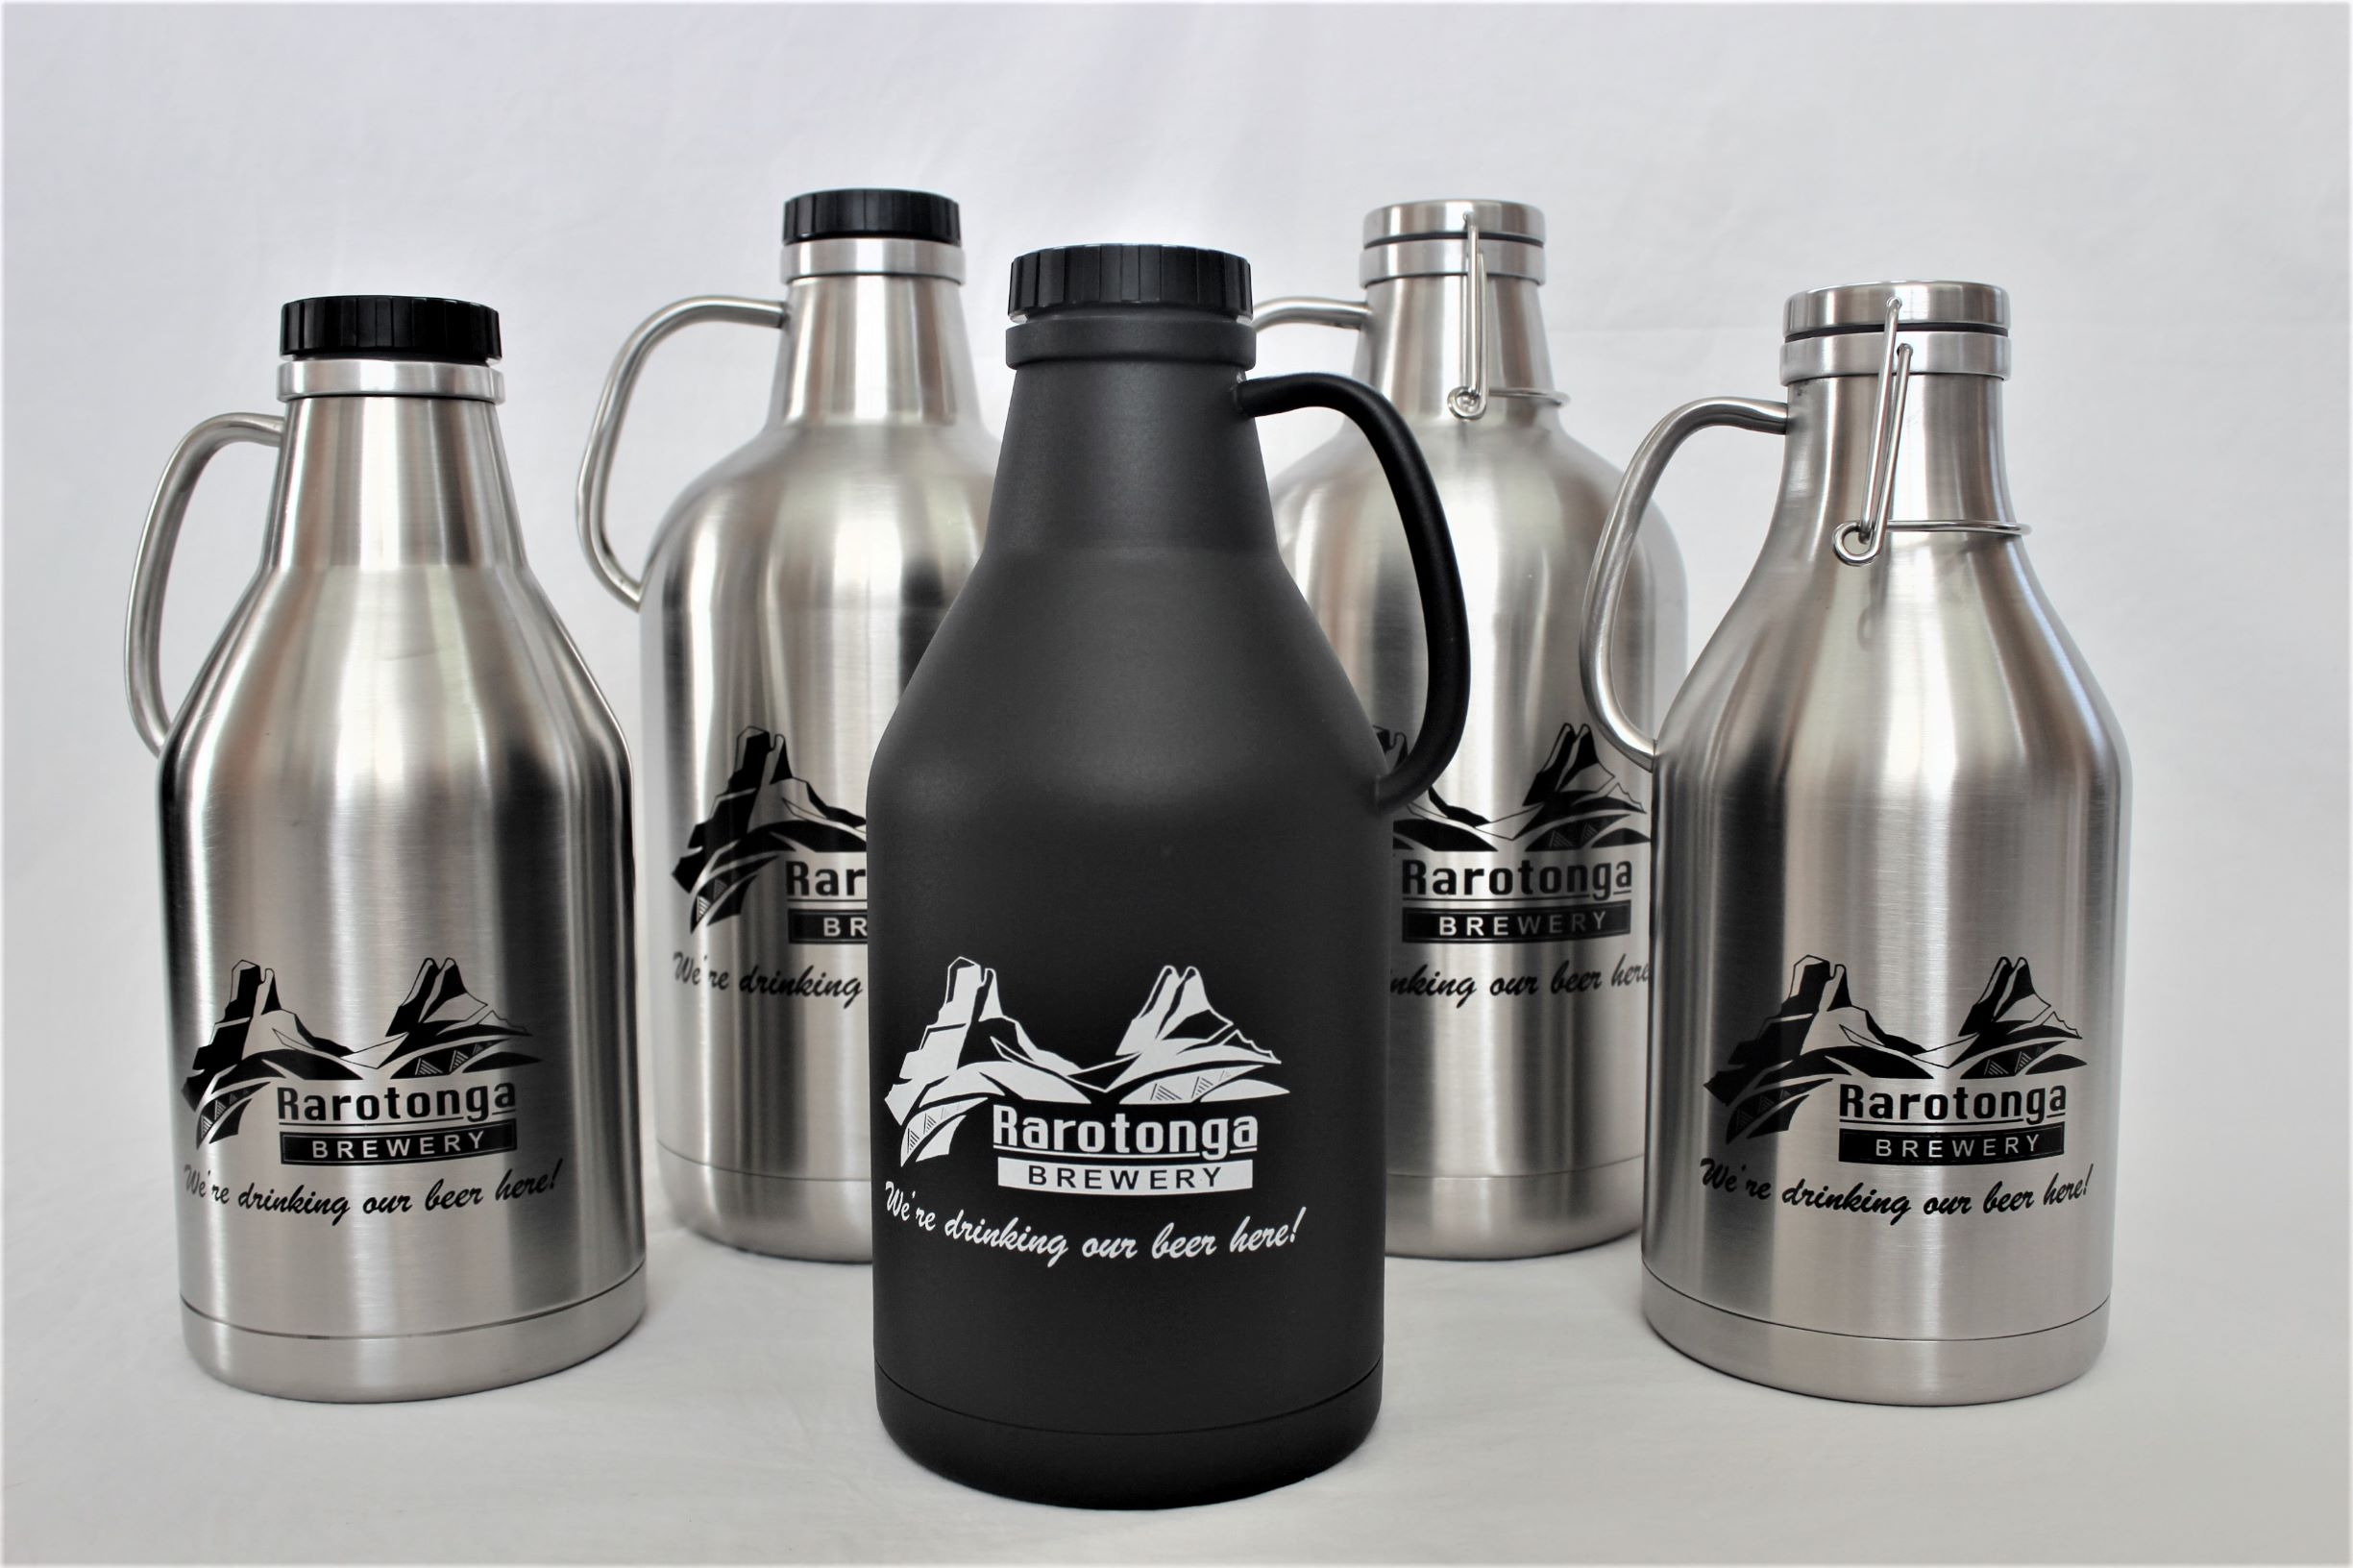 2 Litre Flagons   One of our most popular products! Enjoy your delicious Cook Islands Lager out of this thermo-insulated flagon that will keep your favourite beer colder for longer. Bring it back to the brewery for a refill for only $14!